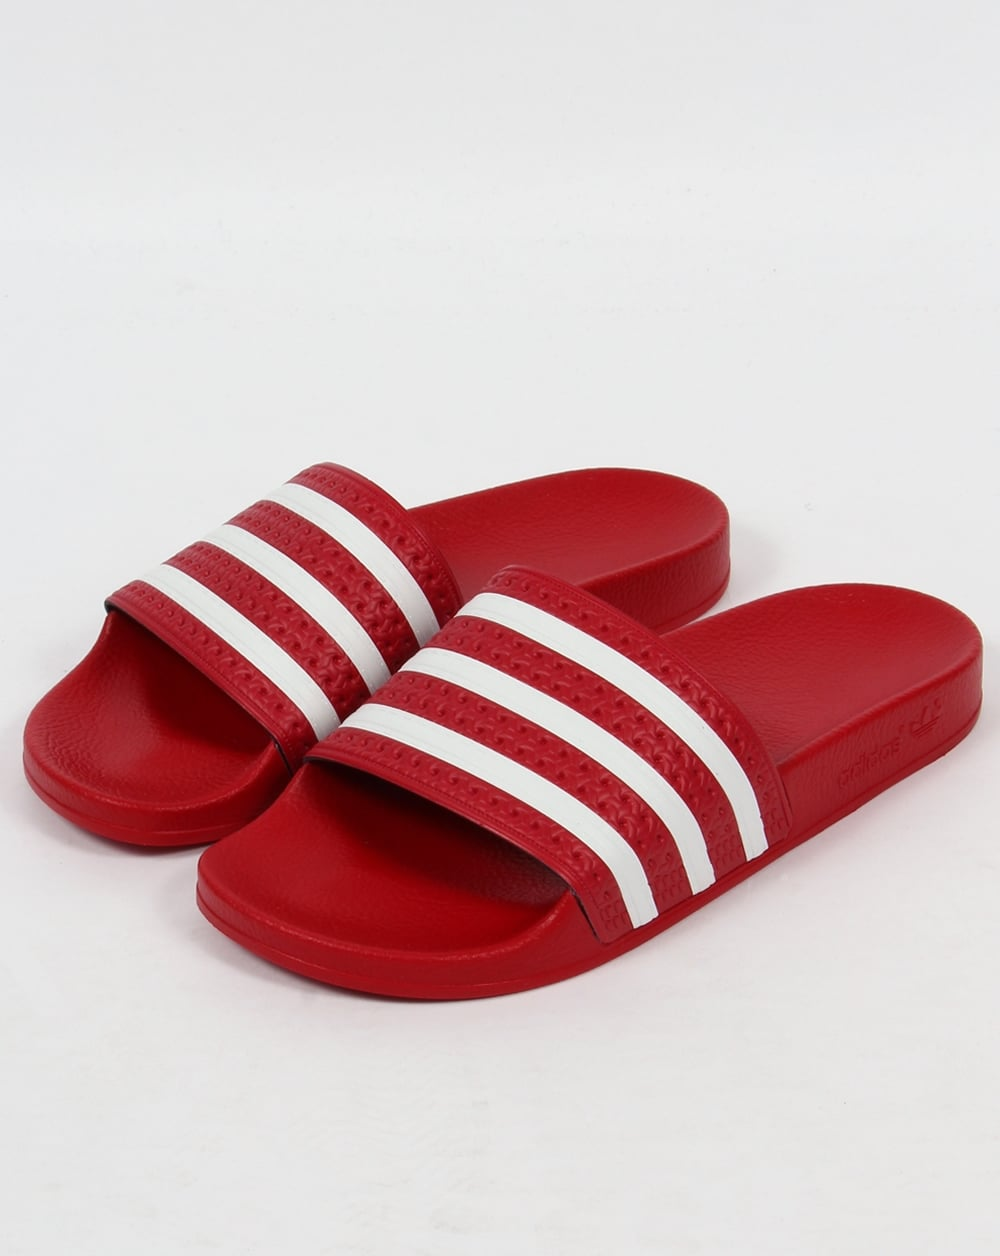 b6379947e3f9 Adidas Adilette Sliders Red White